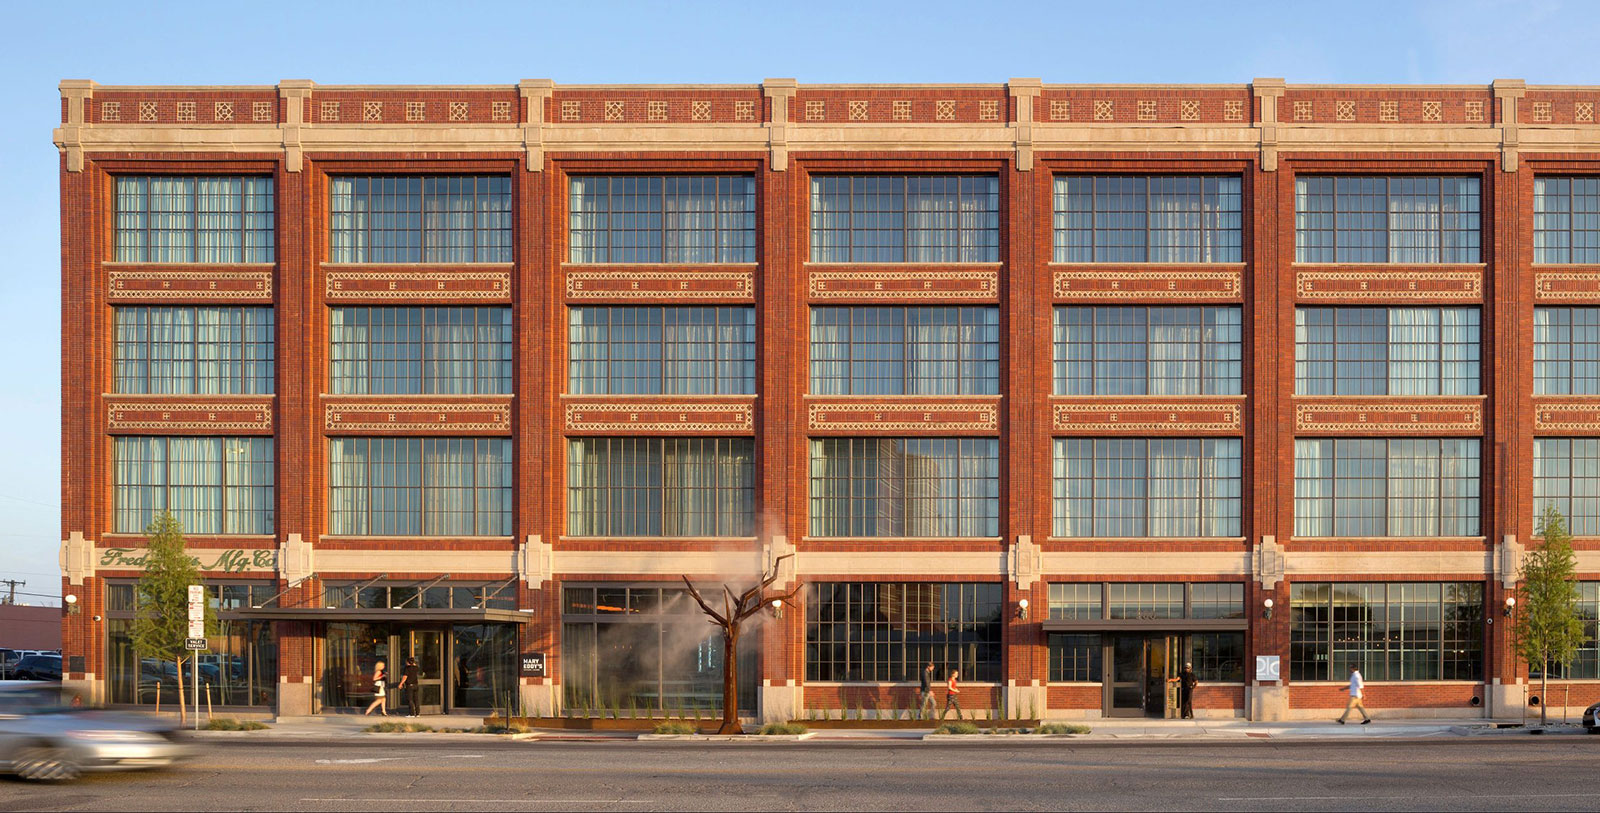 Image of exterior, 21c Museum Hotel Oklahoma City by MGallery, 1916, Member of Historic Hotels of America, in Oklahoma City, Oklahoma, Overview